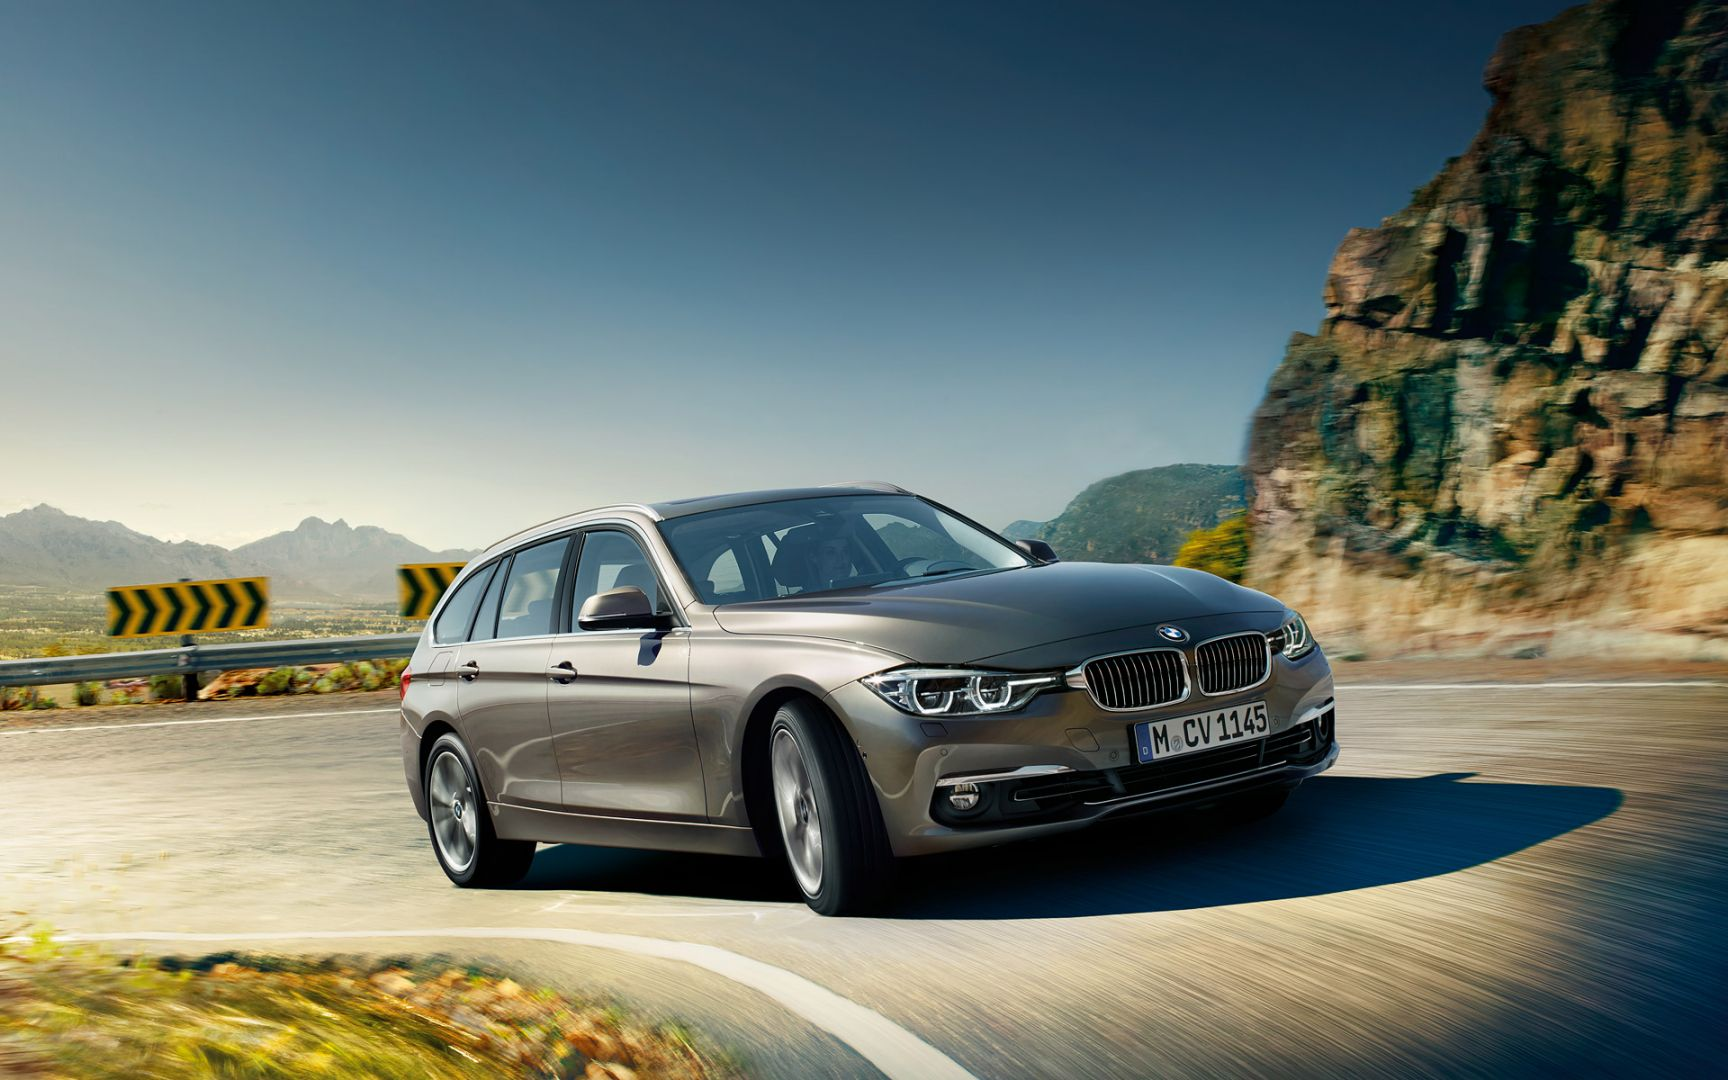 318 sw - BMW 318D TOURING BUSINESS ADVANTAGE AUTOM.